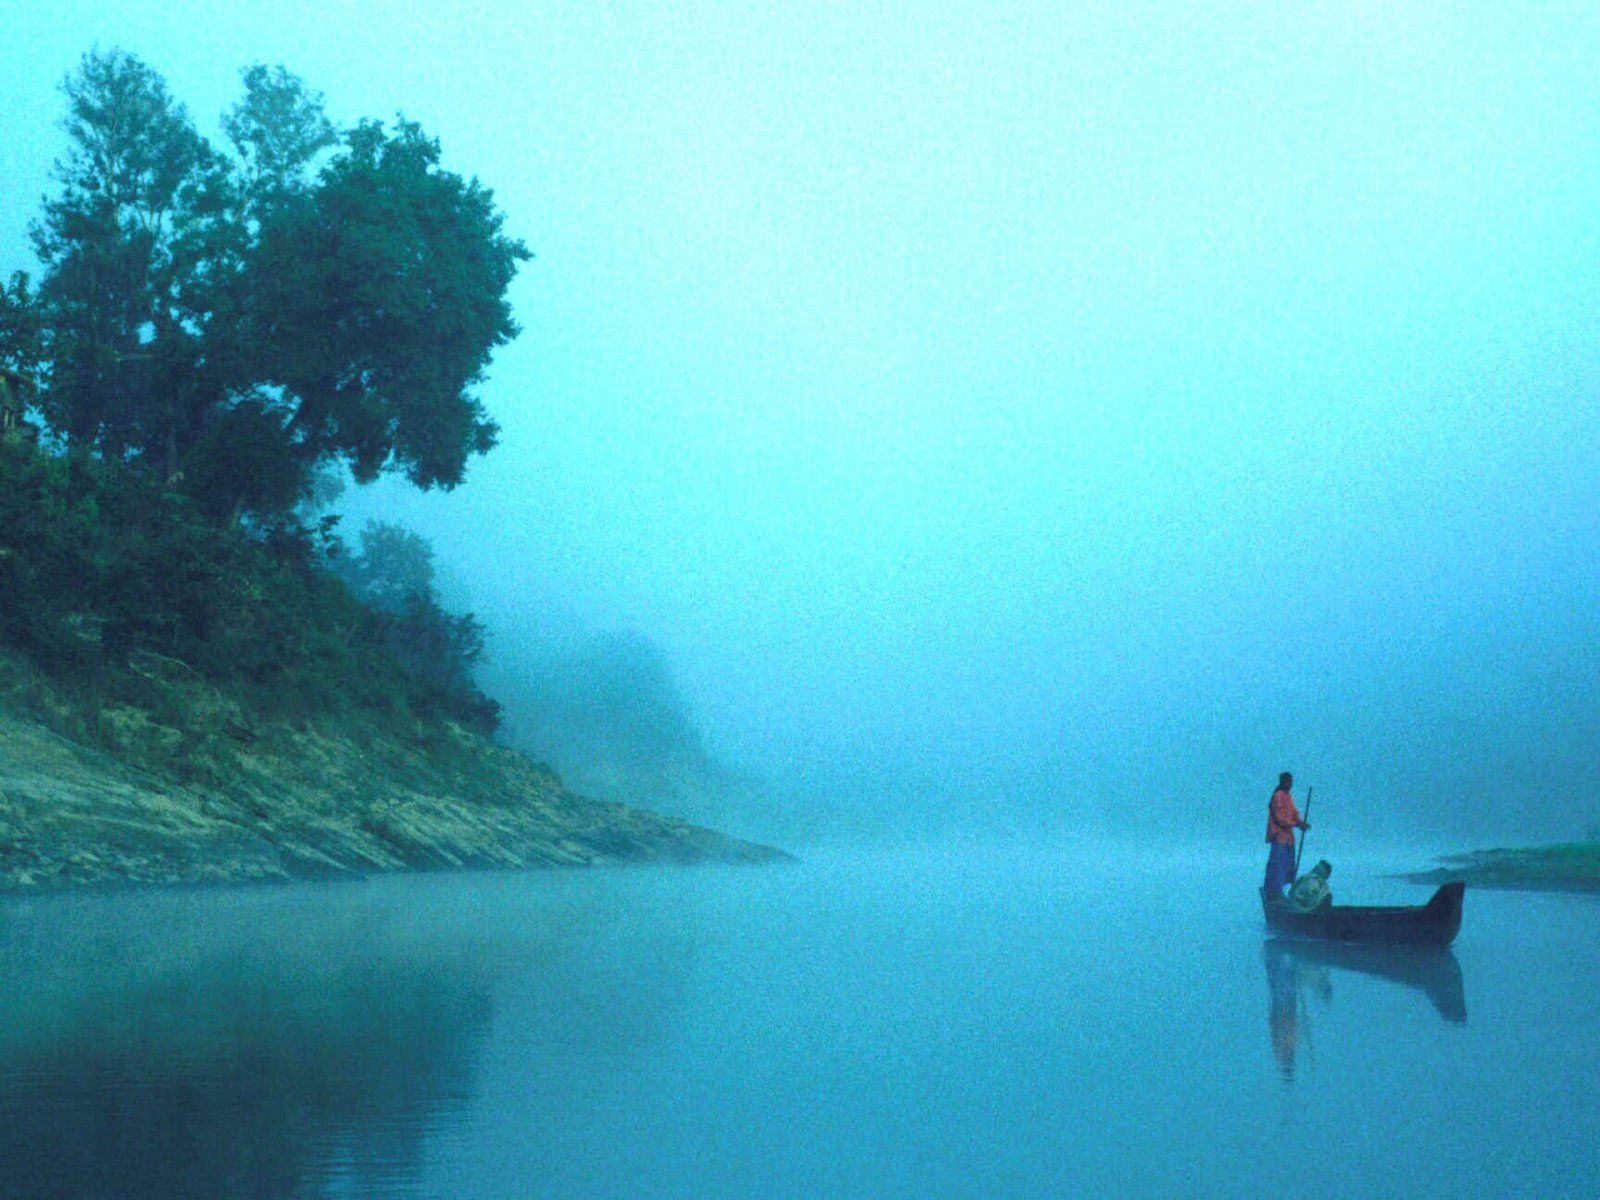 Bangladesh Most Beautiful Picture Of The Day April 28 2017 Http Mostbeautifulpicture Com 2017 04 28 Ba Beautiful Photos Of Nature World Mind Relaxation